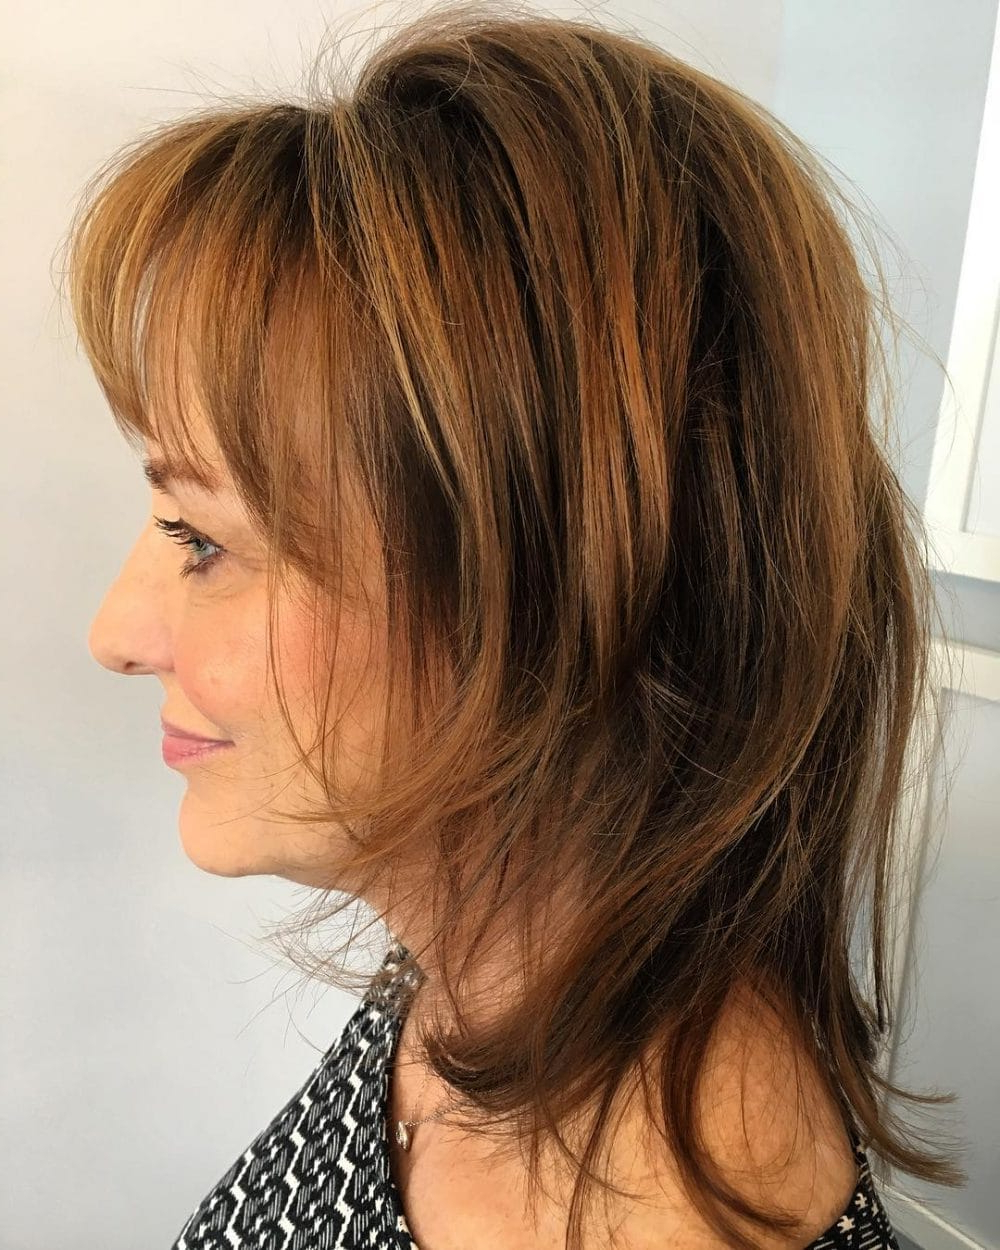 26 Modern Shag Haircuts To Try In 2019 Intended For Fashionable Textured Long Shag Hairstyles With Short Layers (View 4 of 20)